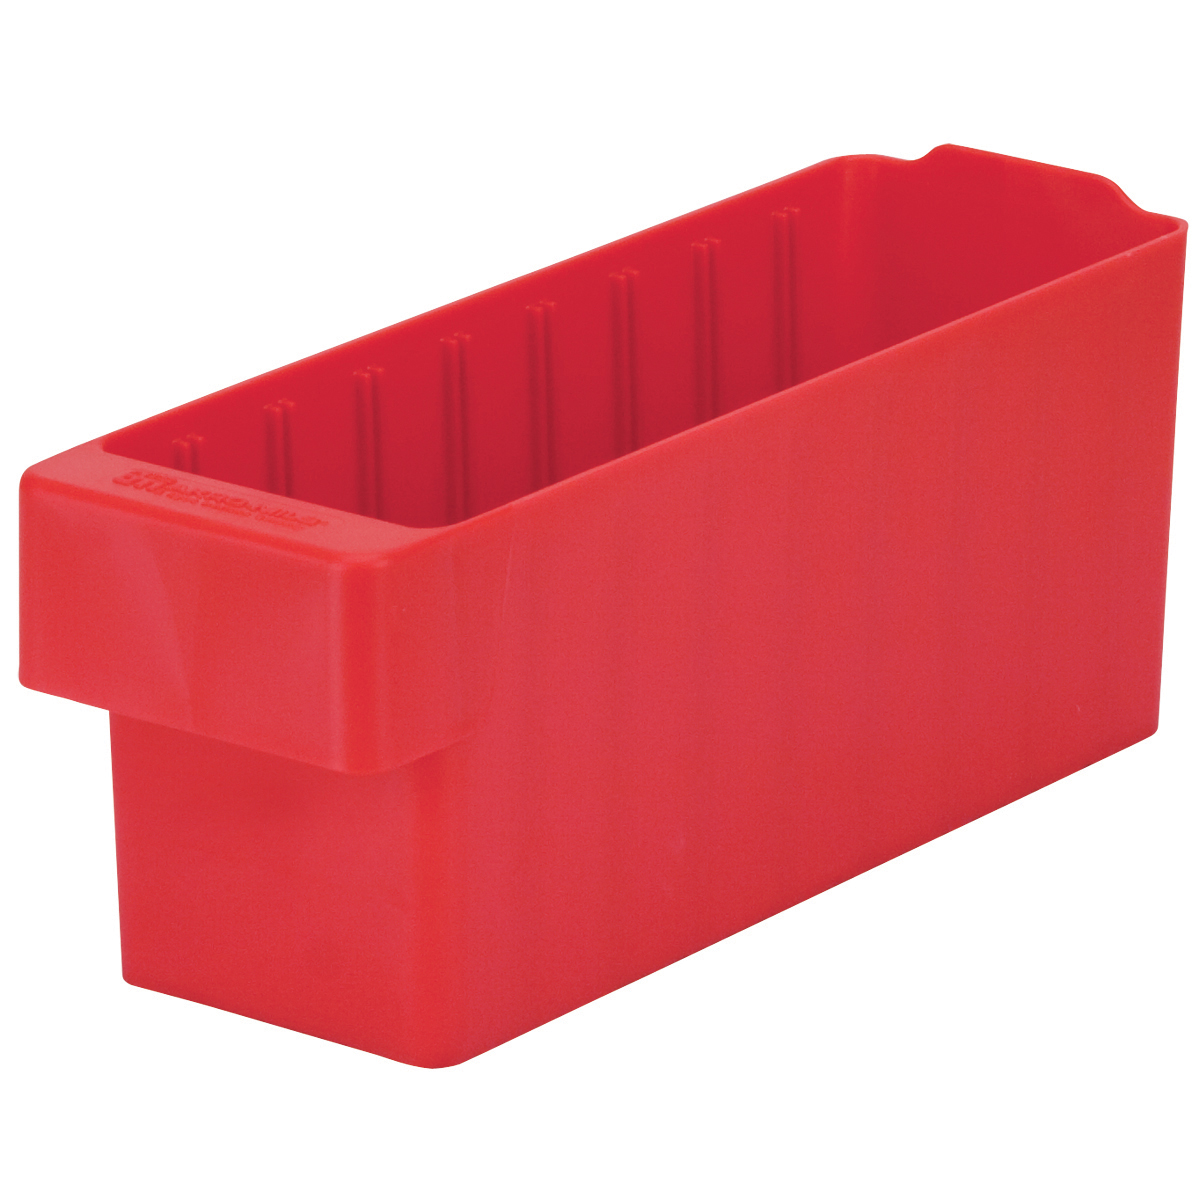 AkroDrawer 11-5/8 x 3-3/4 x 4-5/8, Red (31142RED).  This item sold in carton quantities of 6.